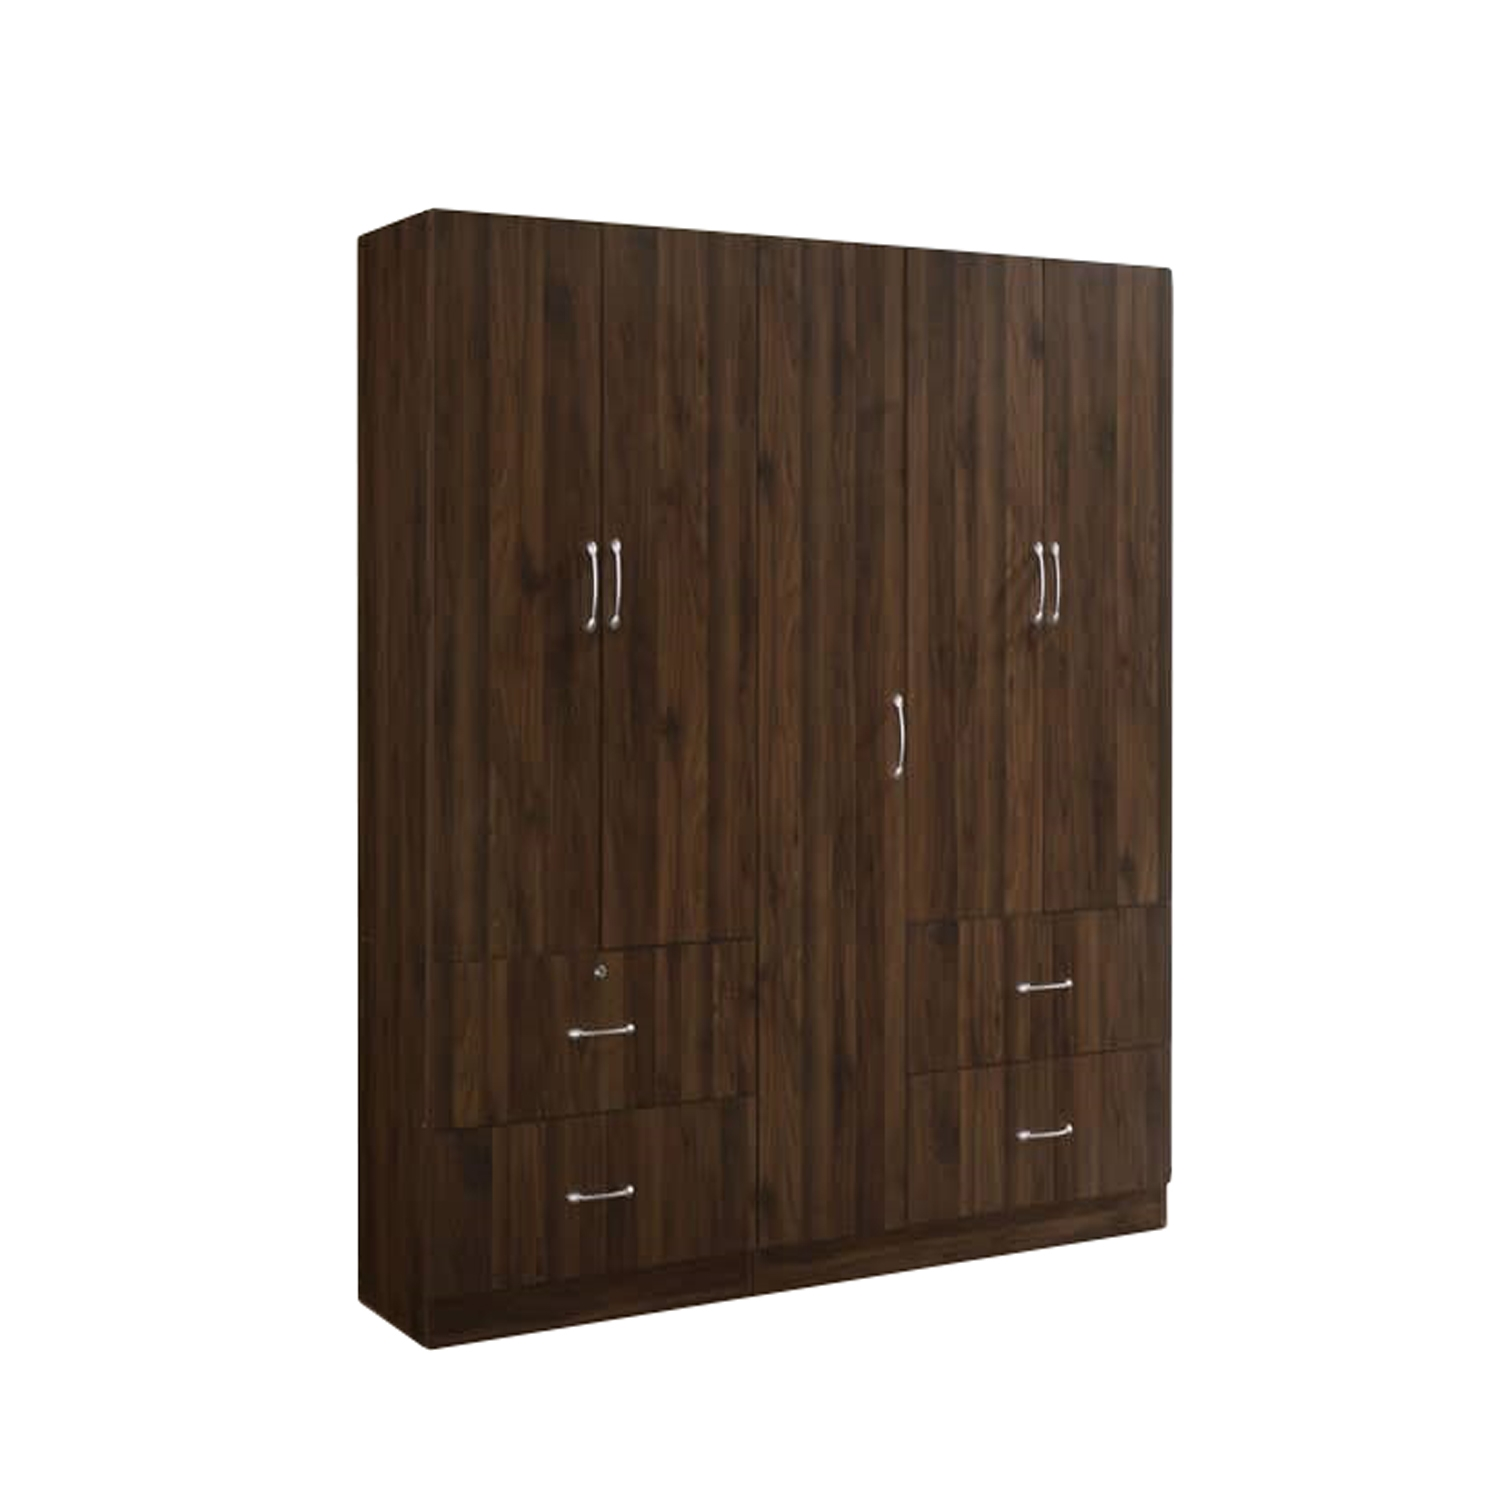 [furnituremartSG]_Tallin-3 Wardrobe_FREE DELIVERY+FREE INSTALLATION